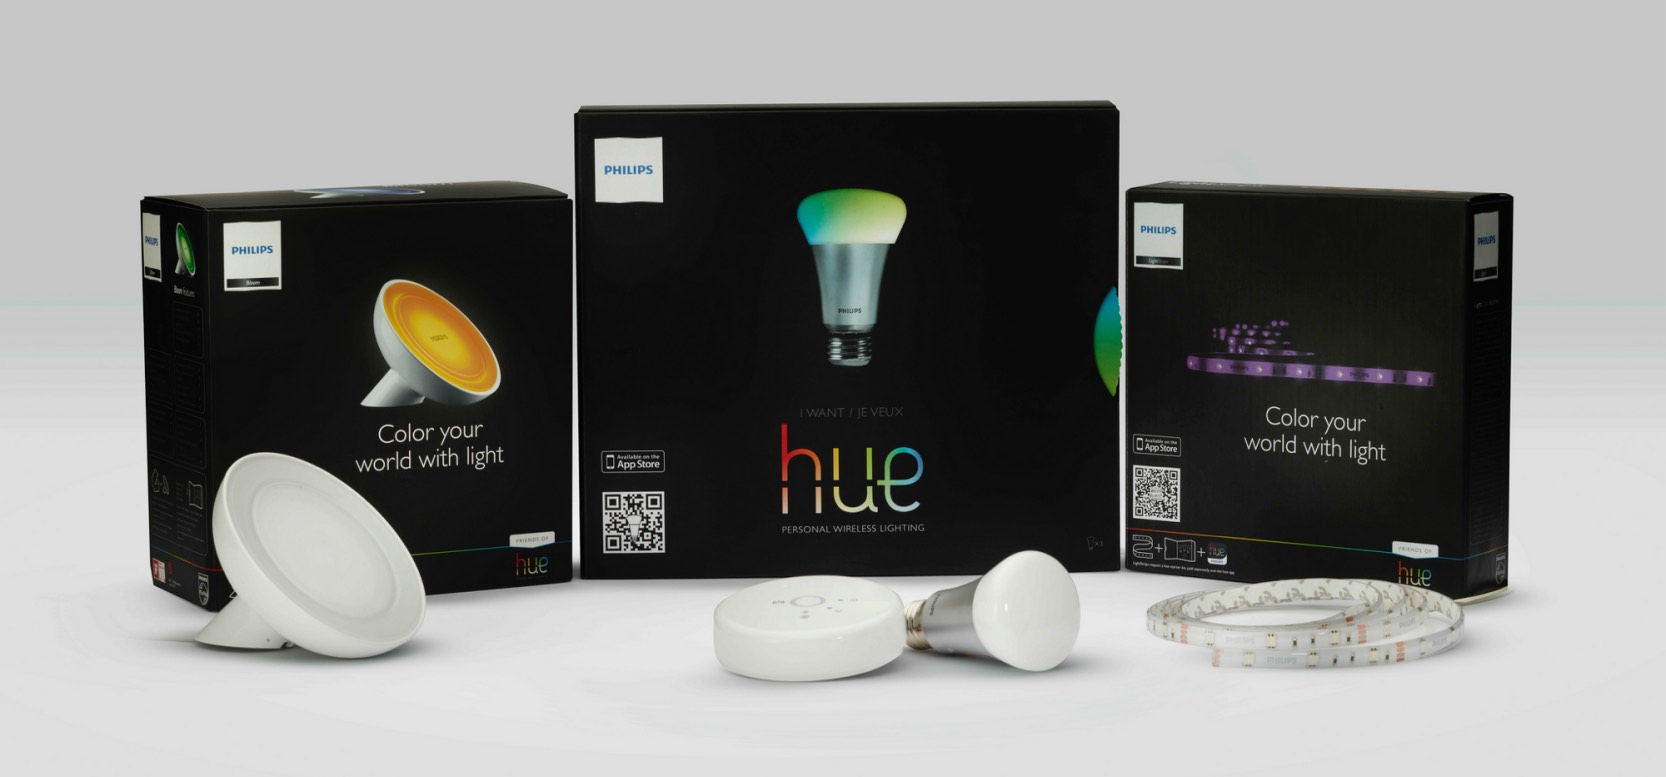 wlan licht philips hue im ganz pers nlichen test giga. Black Bedroom Furniture Sets. Home Design Ideas